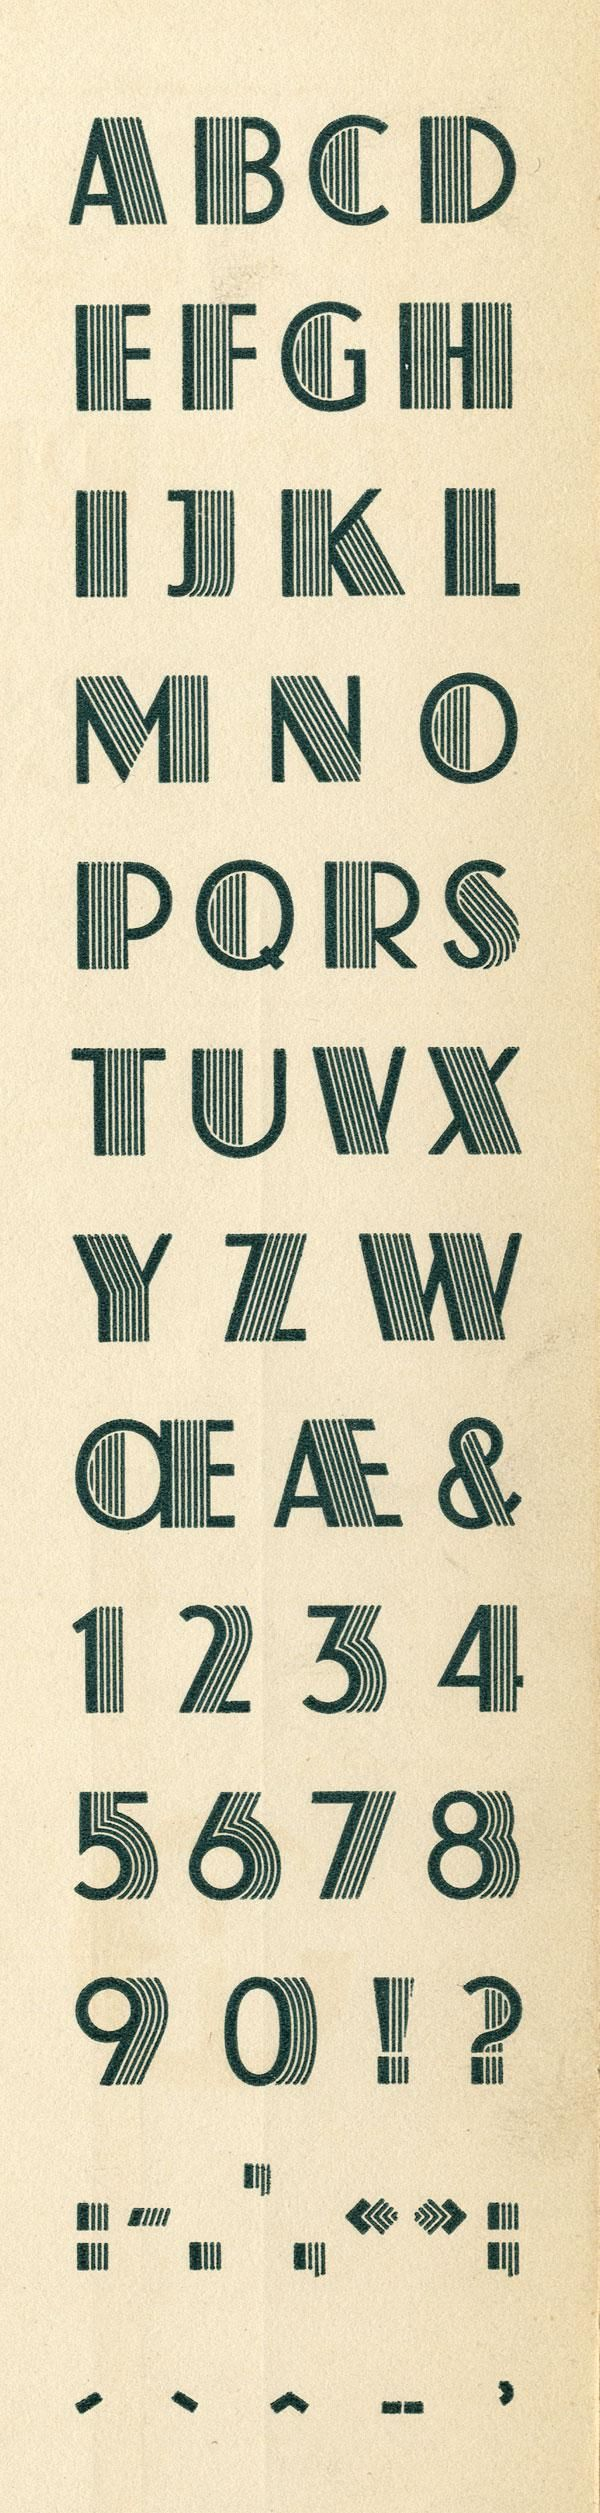 """Atlas"" font used for #TheGreatGatsby movie"